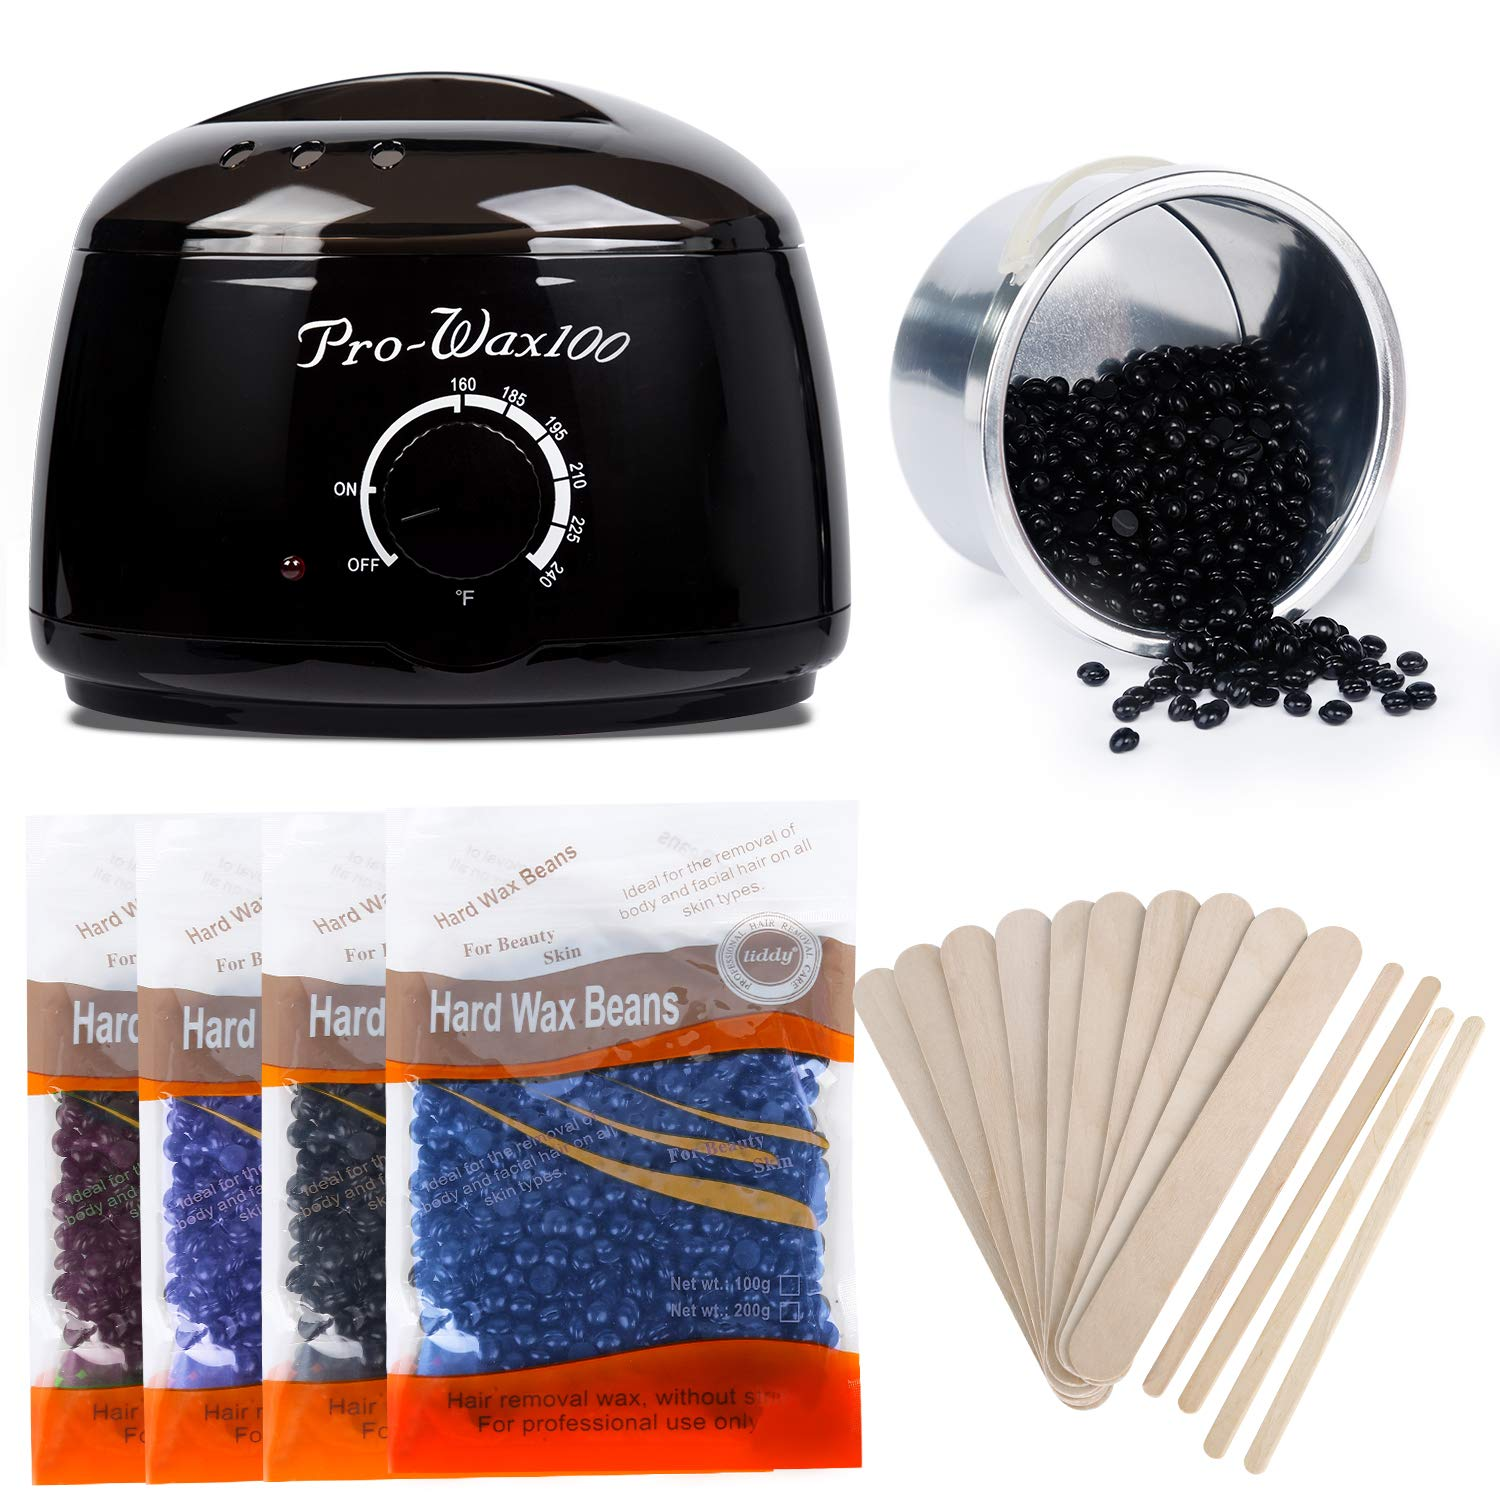 Wax Warmer Hair Removal Kit, Miss Gorgeous Home Waxing Kit with 4 Hard Wax Beans and 10+4 Applicator Sticks - Professional Waxing Kit for Women and Men, Body, Face, Bikini Hair Removal